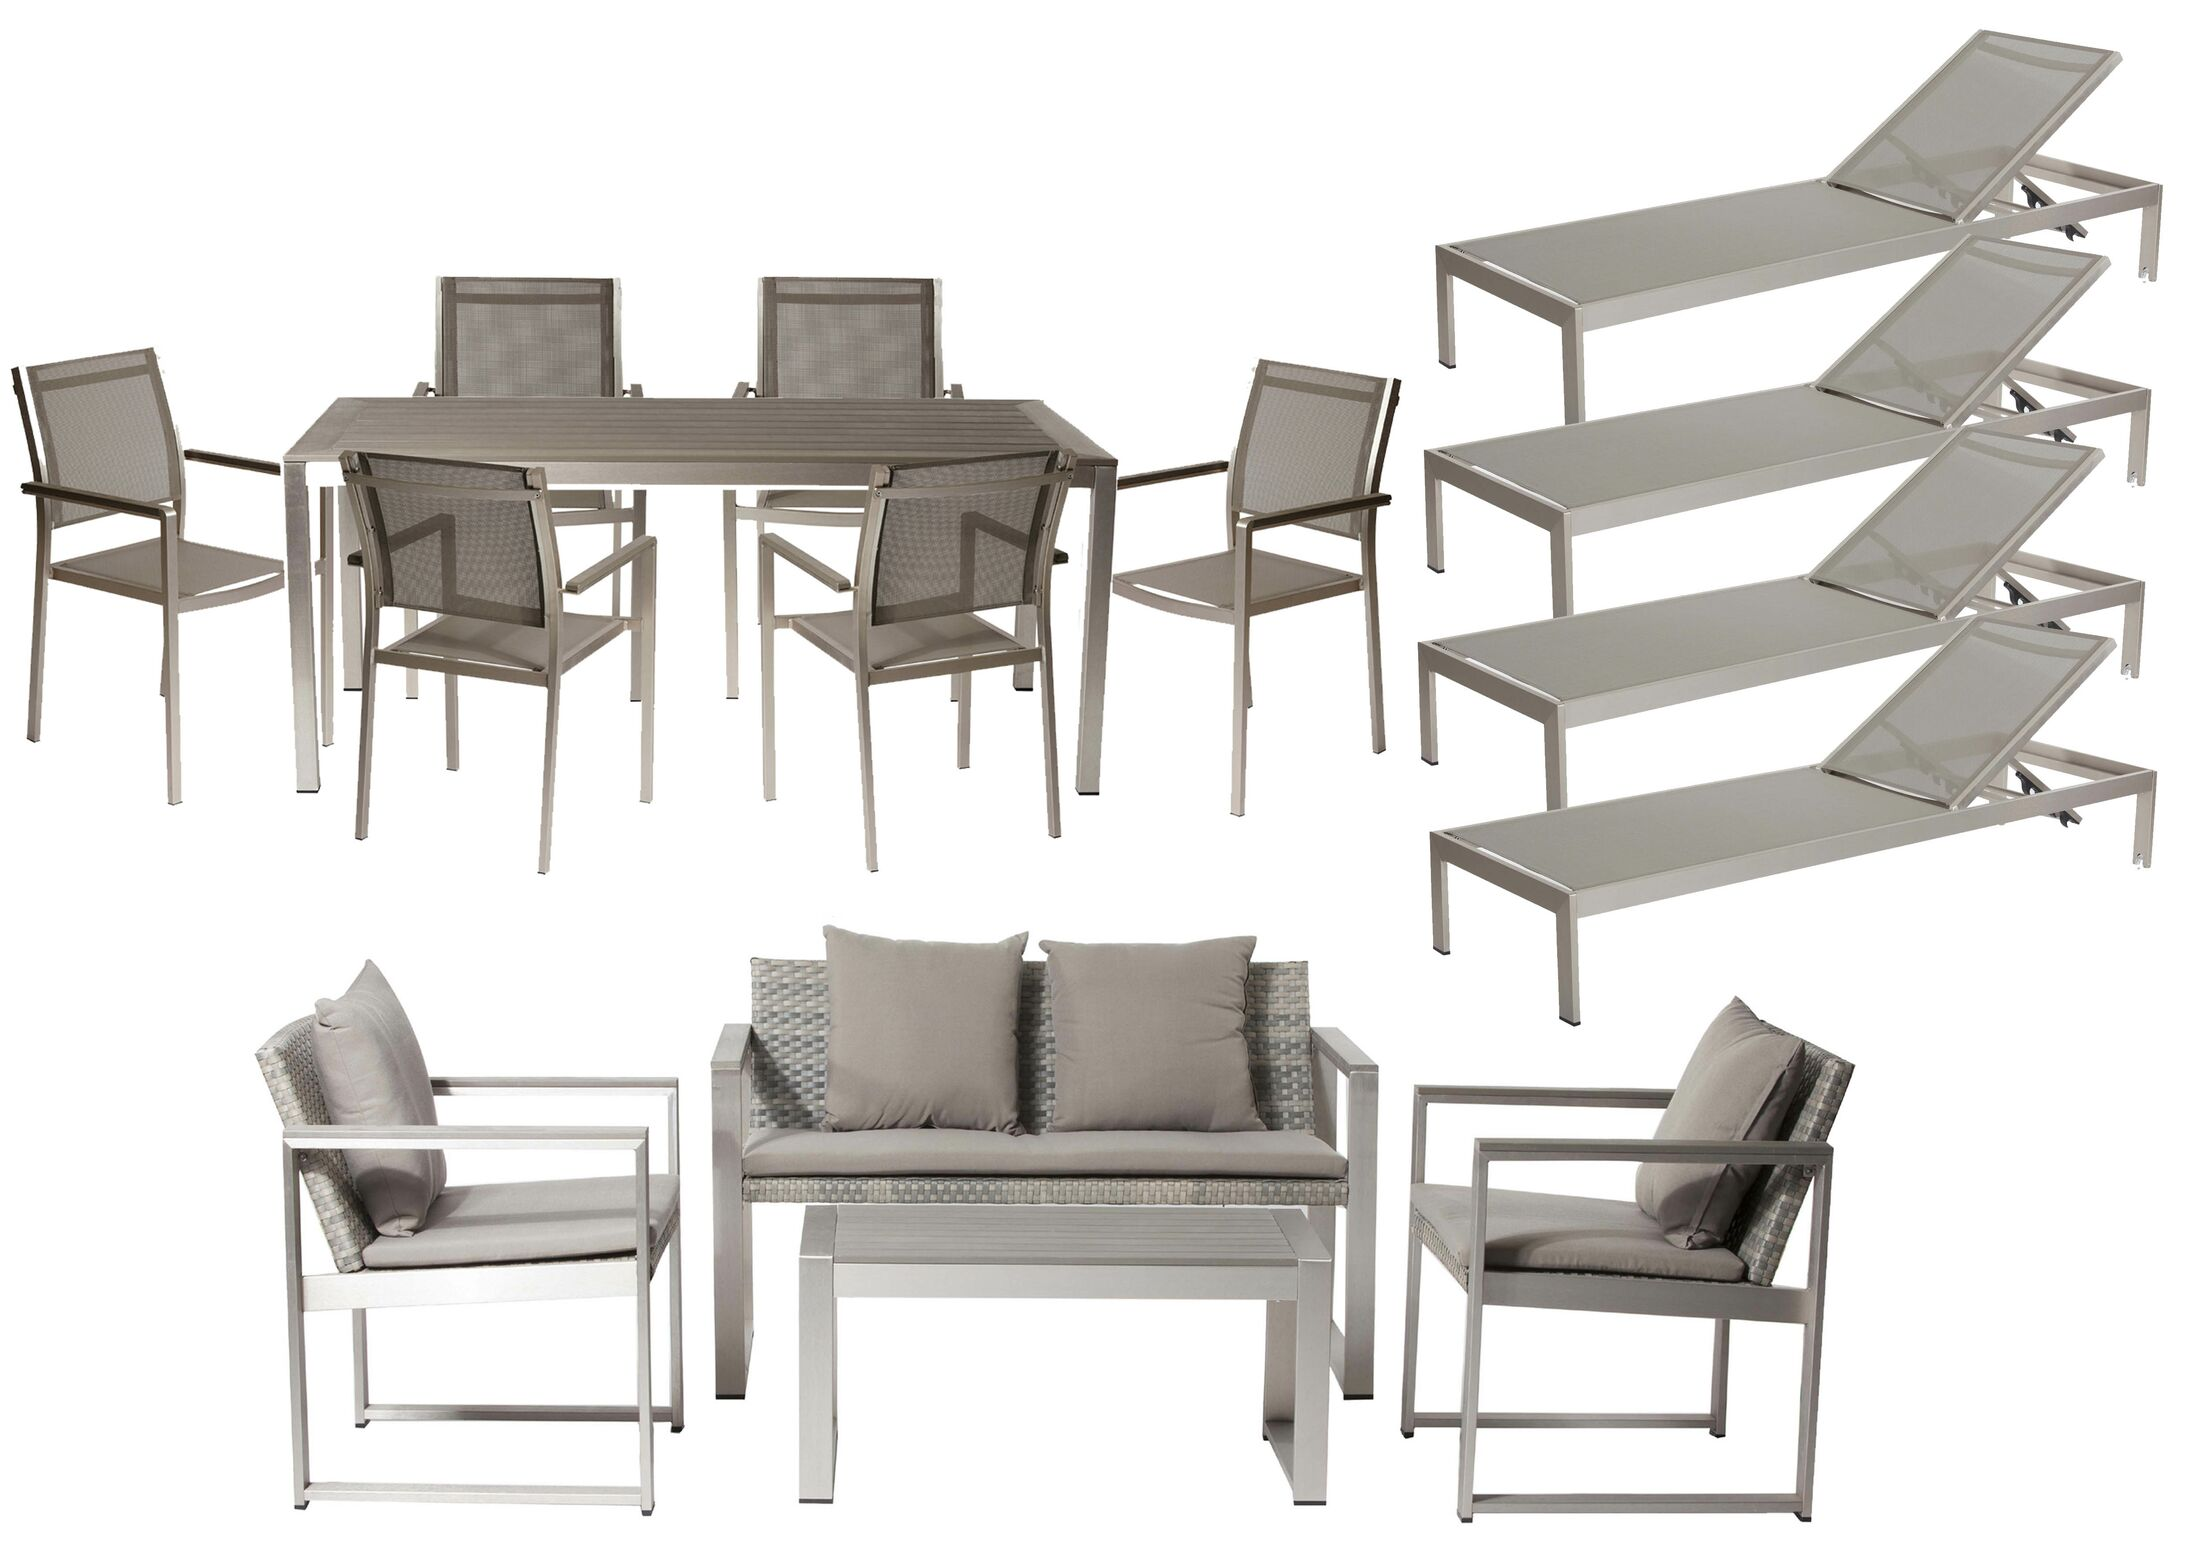 Dorsey 15 Piece Conversationl Set with Cushions Frame Color: Gray, Cushion Color: Gray